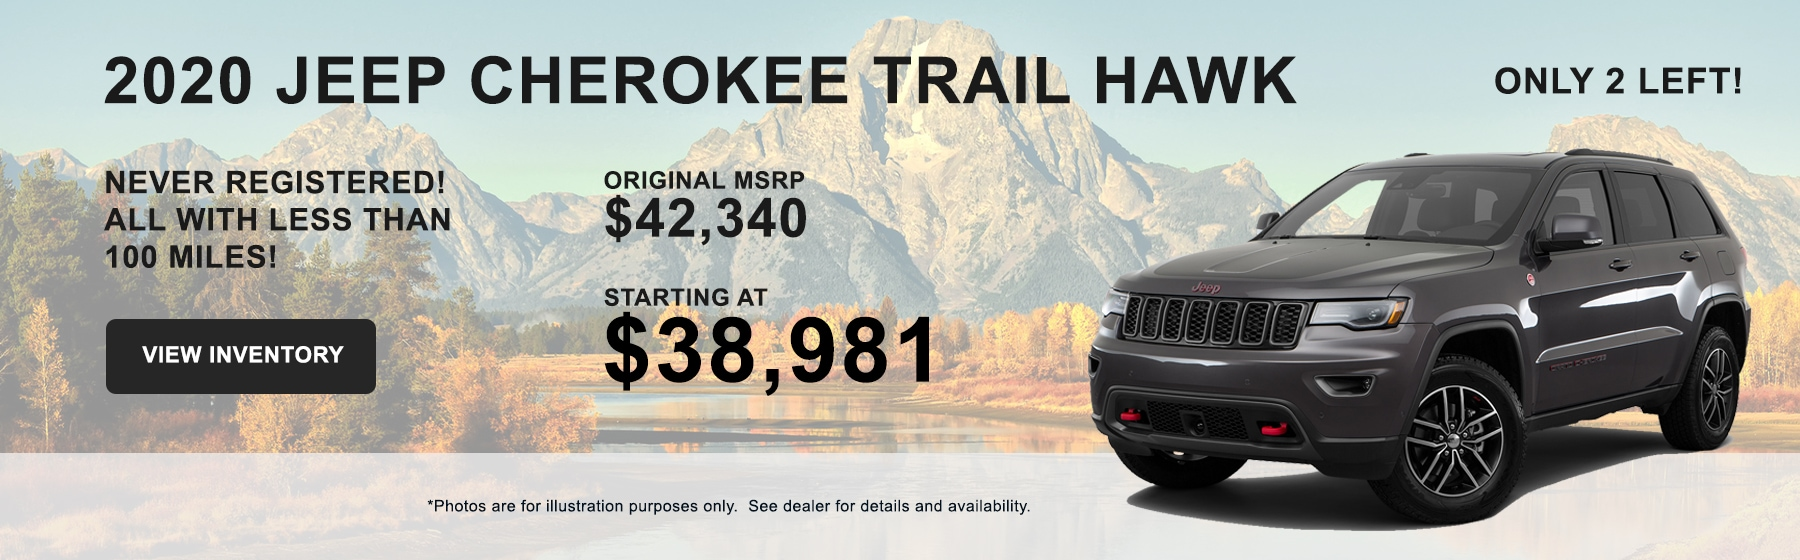 Buy a 2020 Jeep Cherokee Trail Hawk starting at $38,981